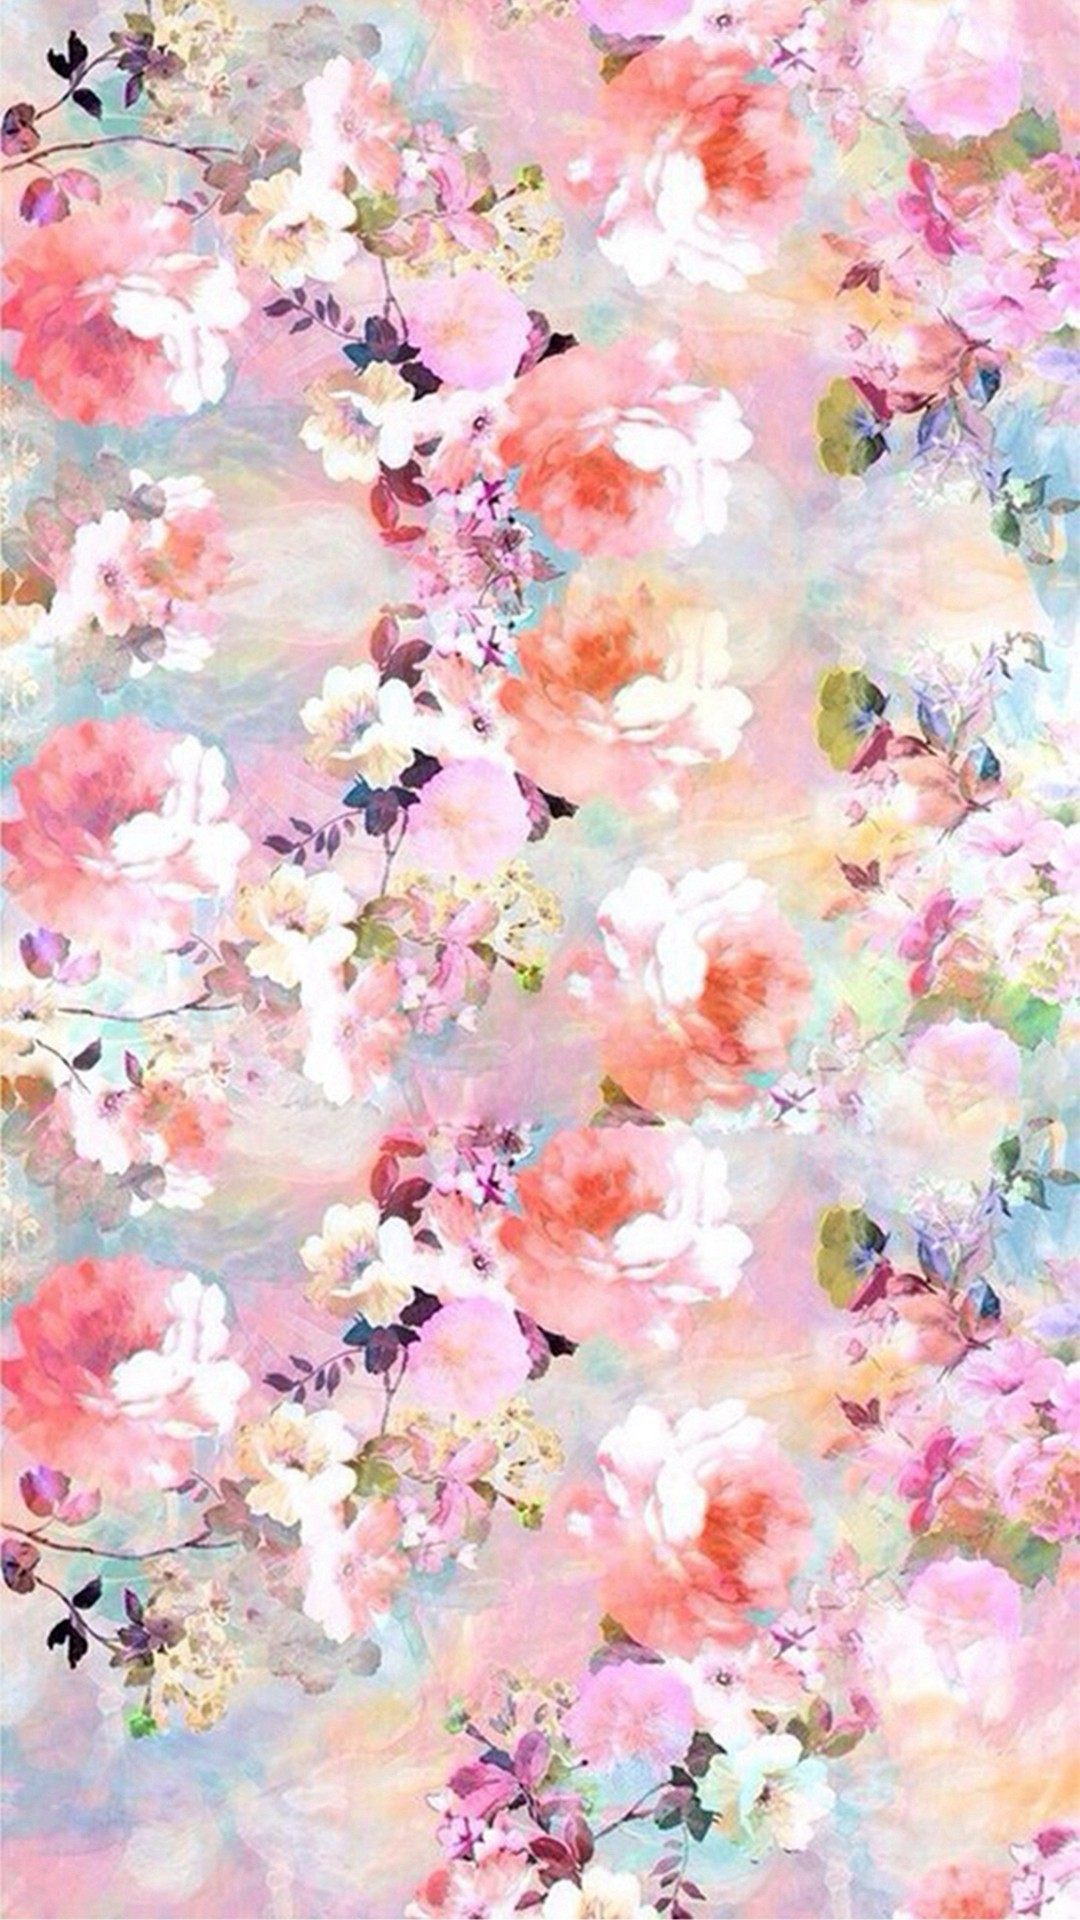 Watercolor flowers wallpaper 51 images - Flower wallpaper iphone 8 plus ...